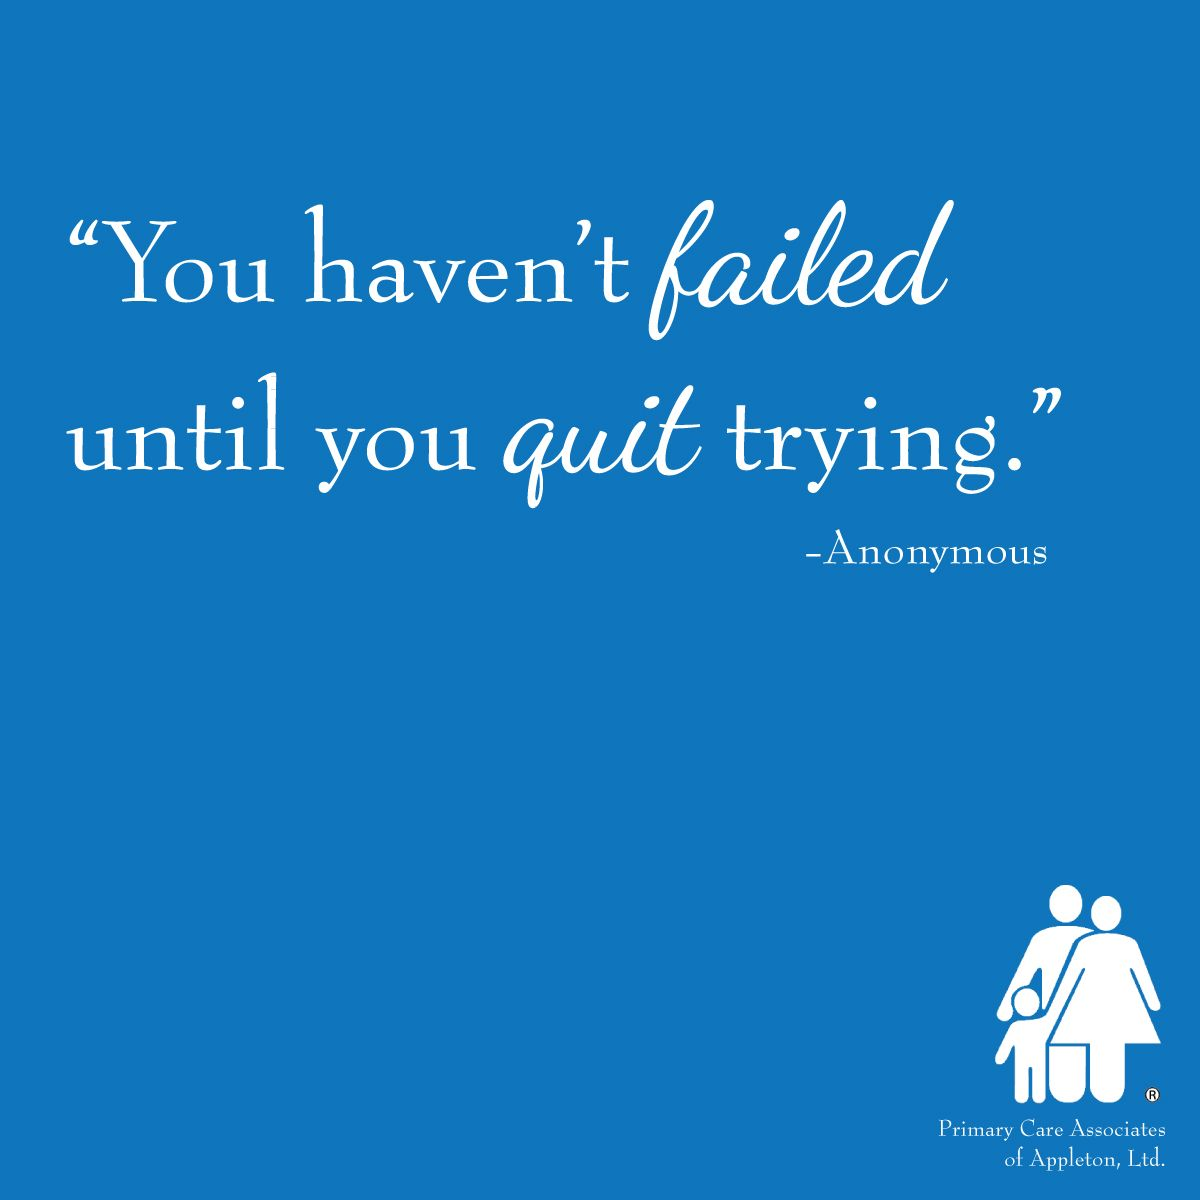 You haven't failed until you quit trying.Anonymous